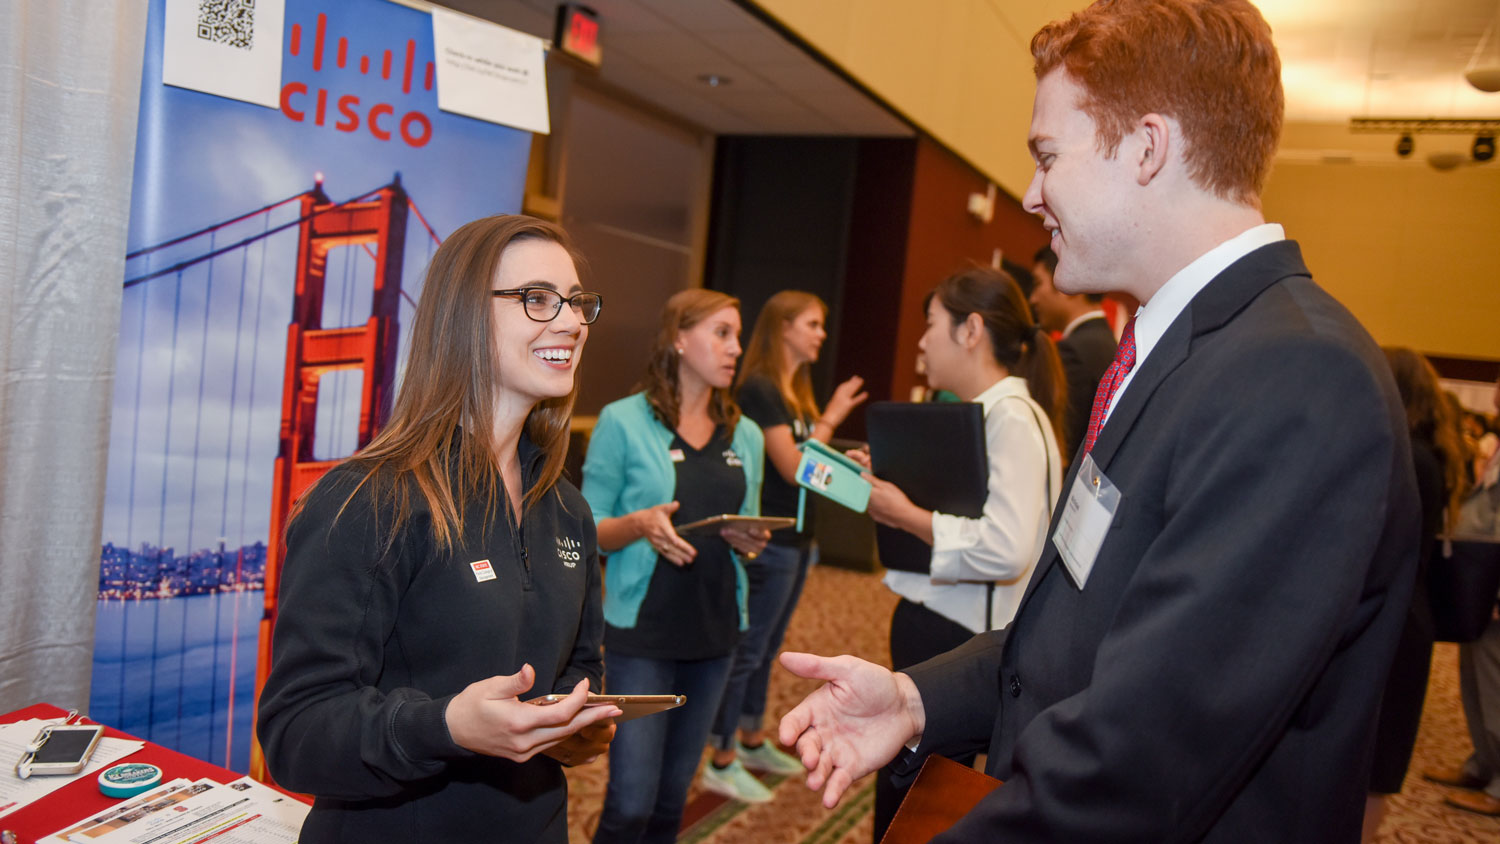 Student talking to recruiter at career fair